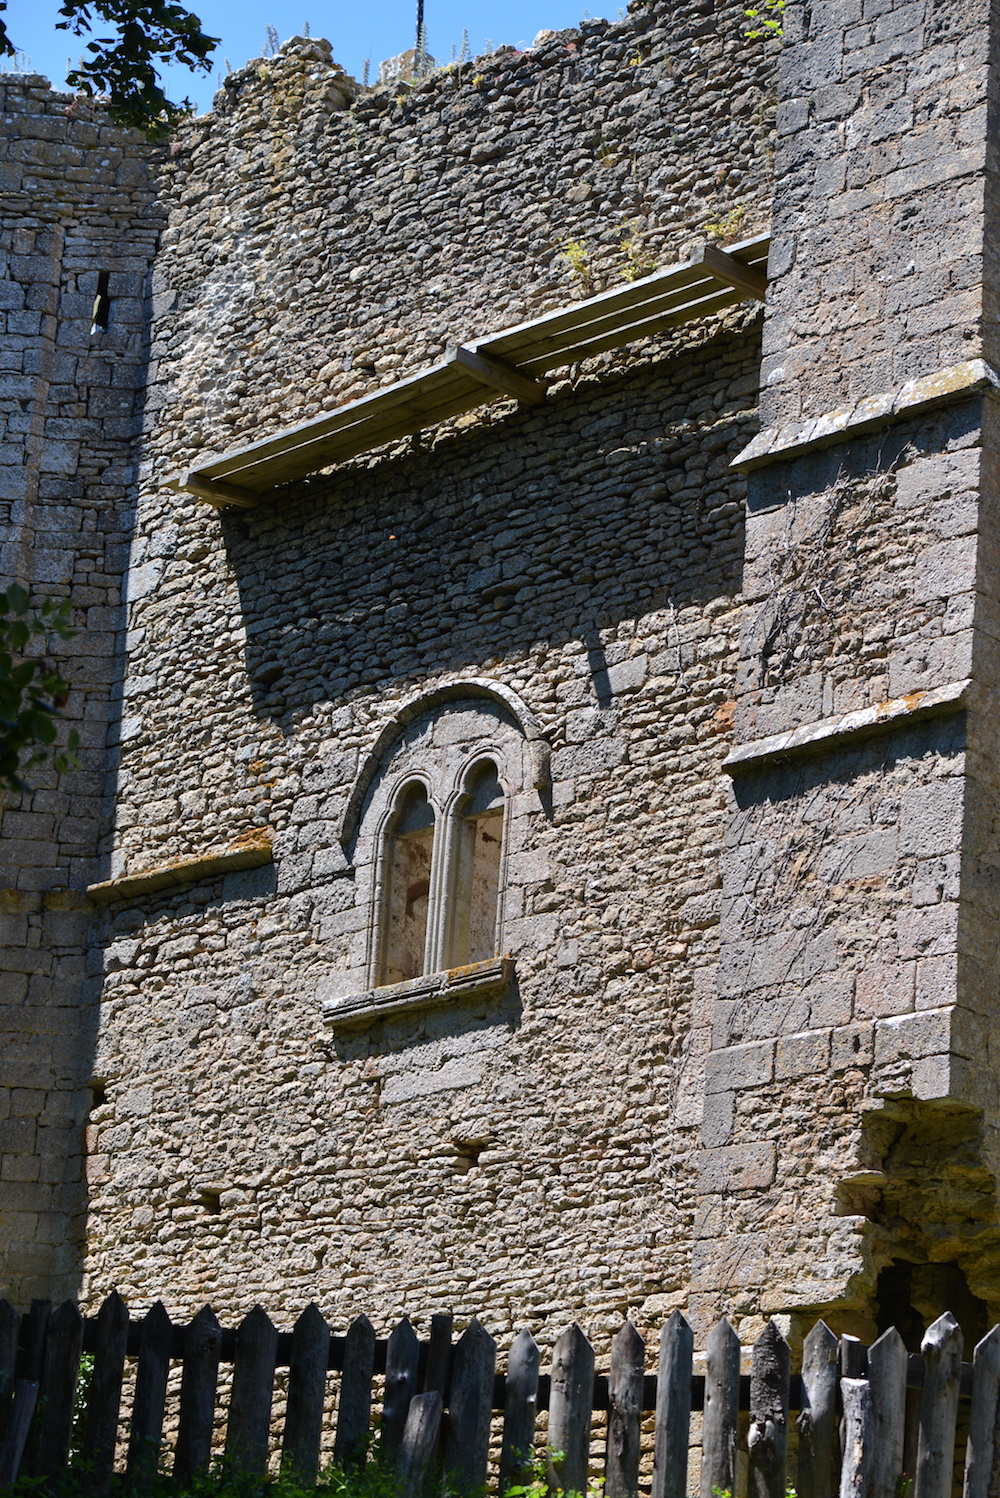 The magnificent 12C wall and window